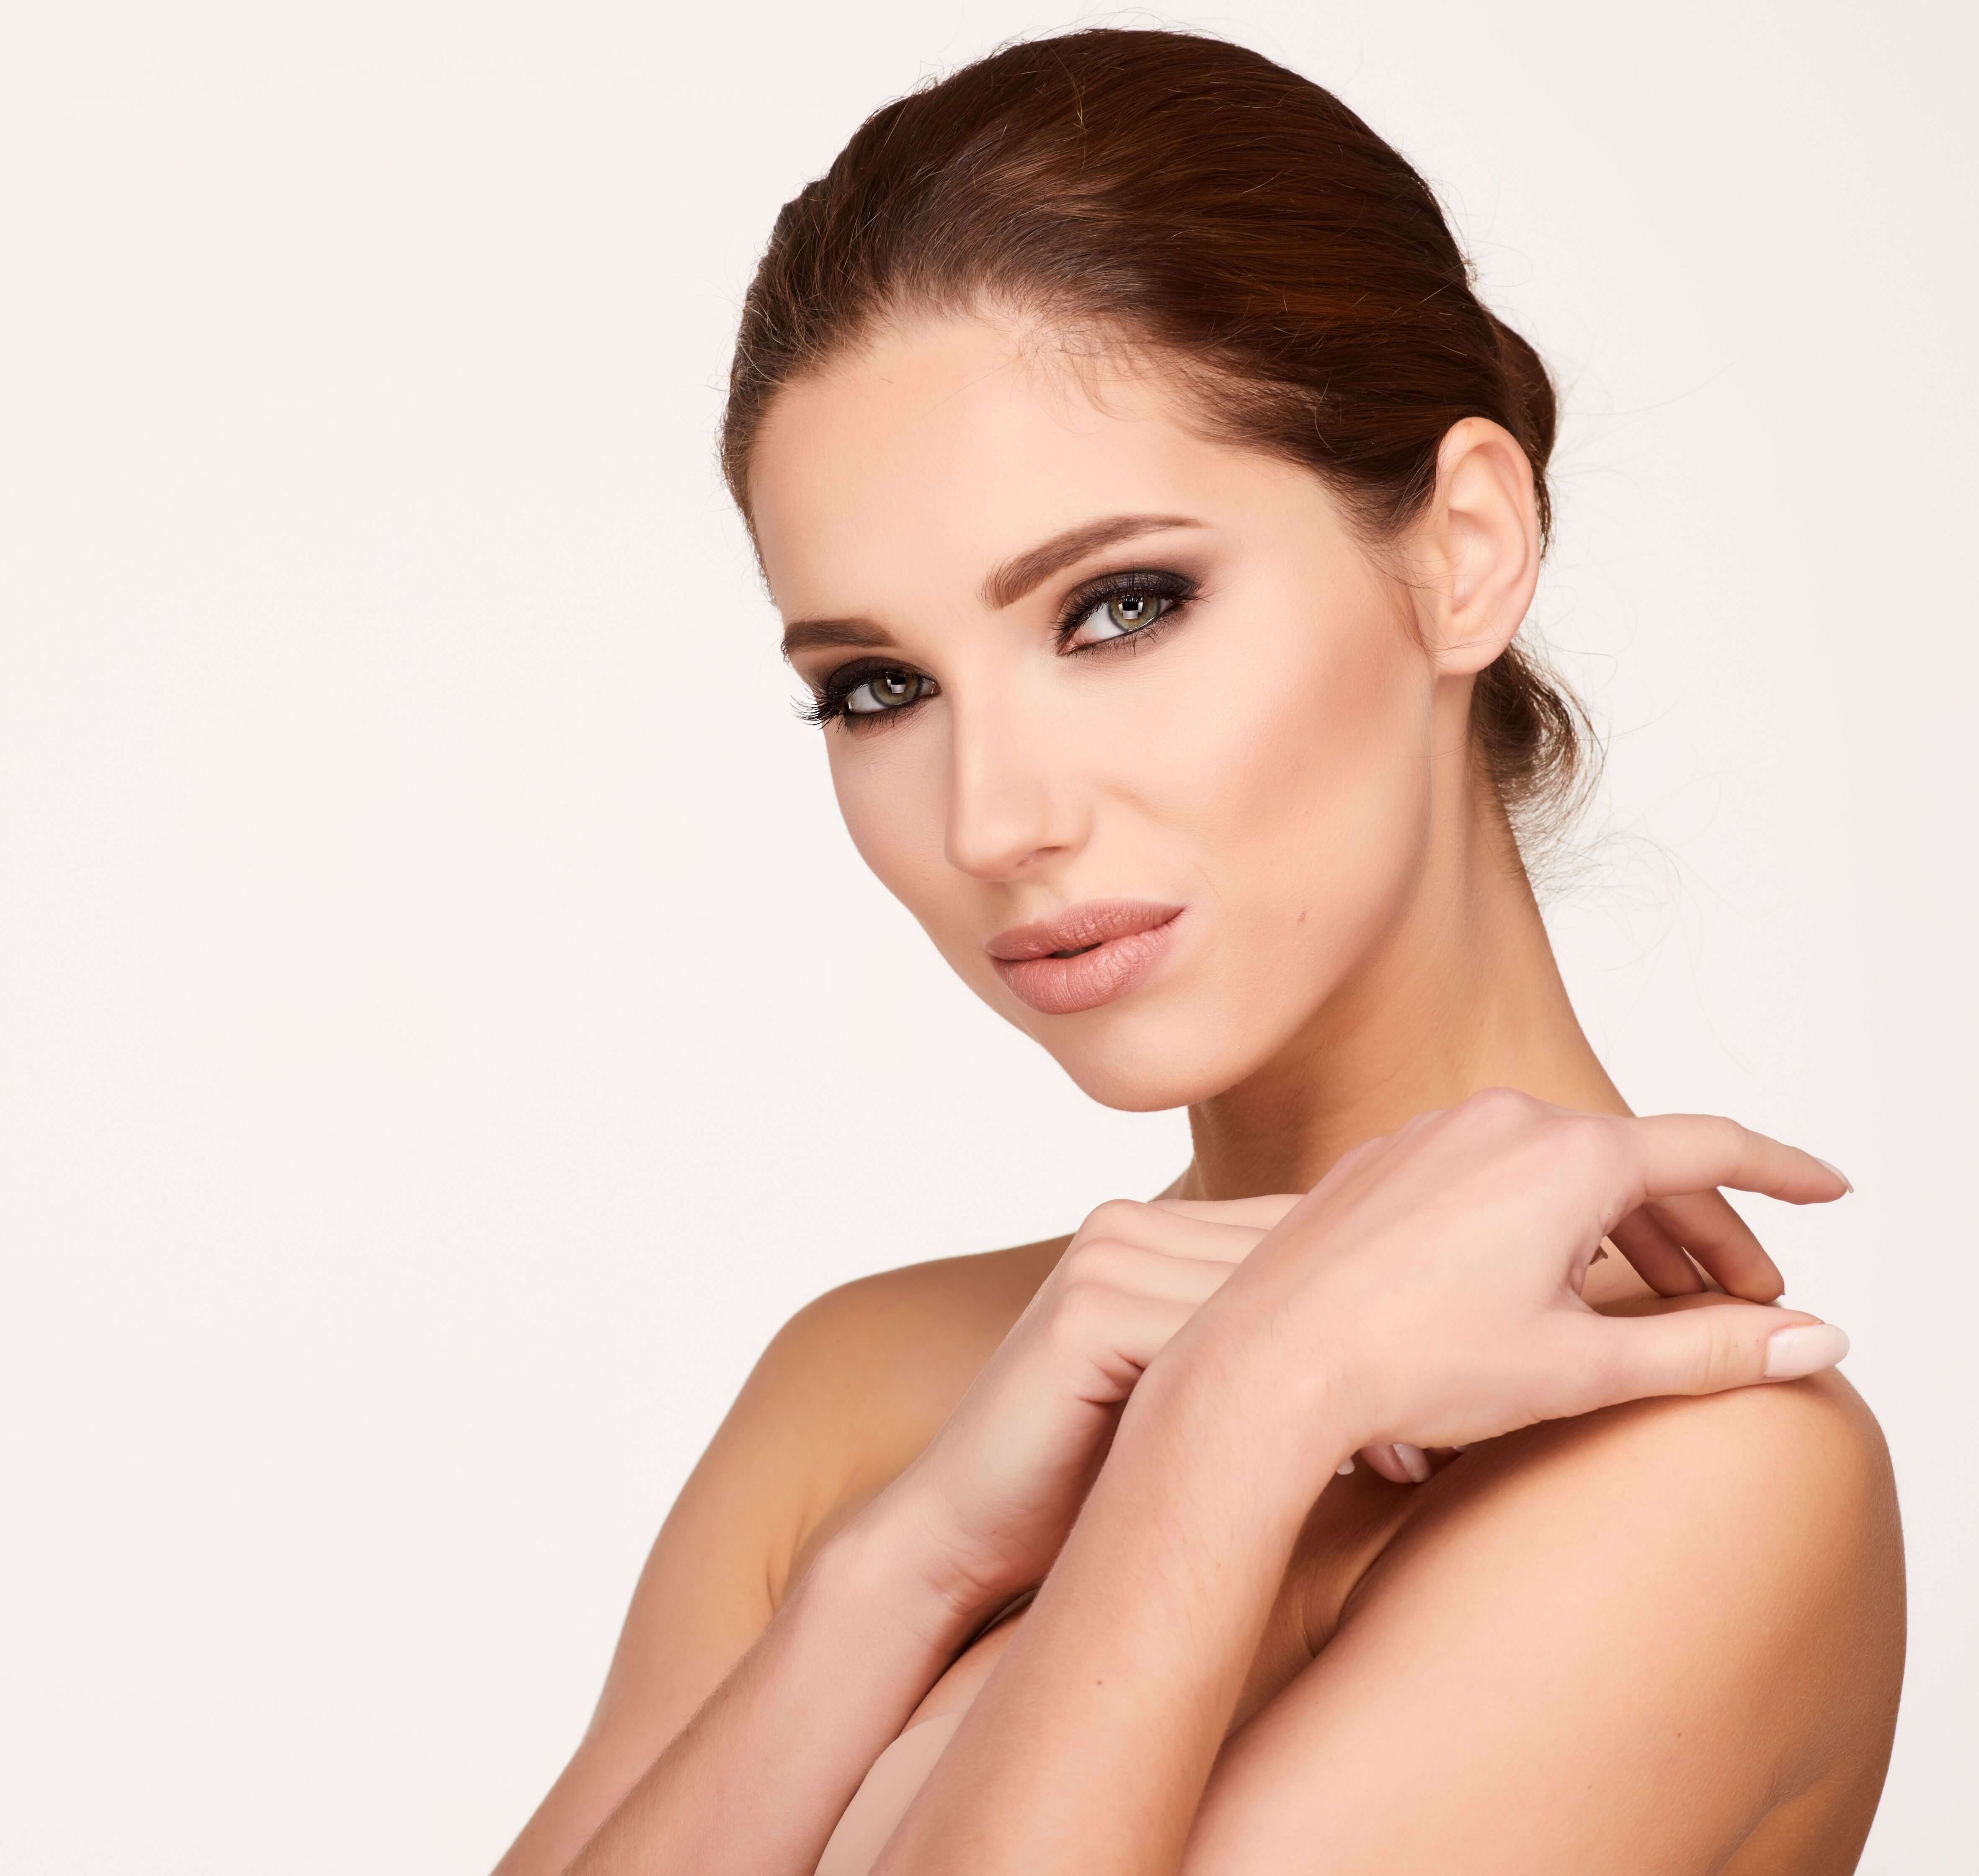 Blog Post: What is the Best Way to Prevent Skin Cancer?